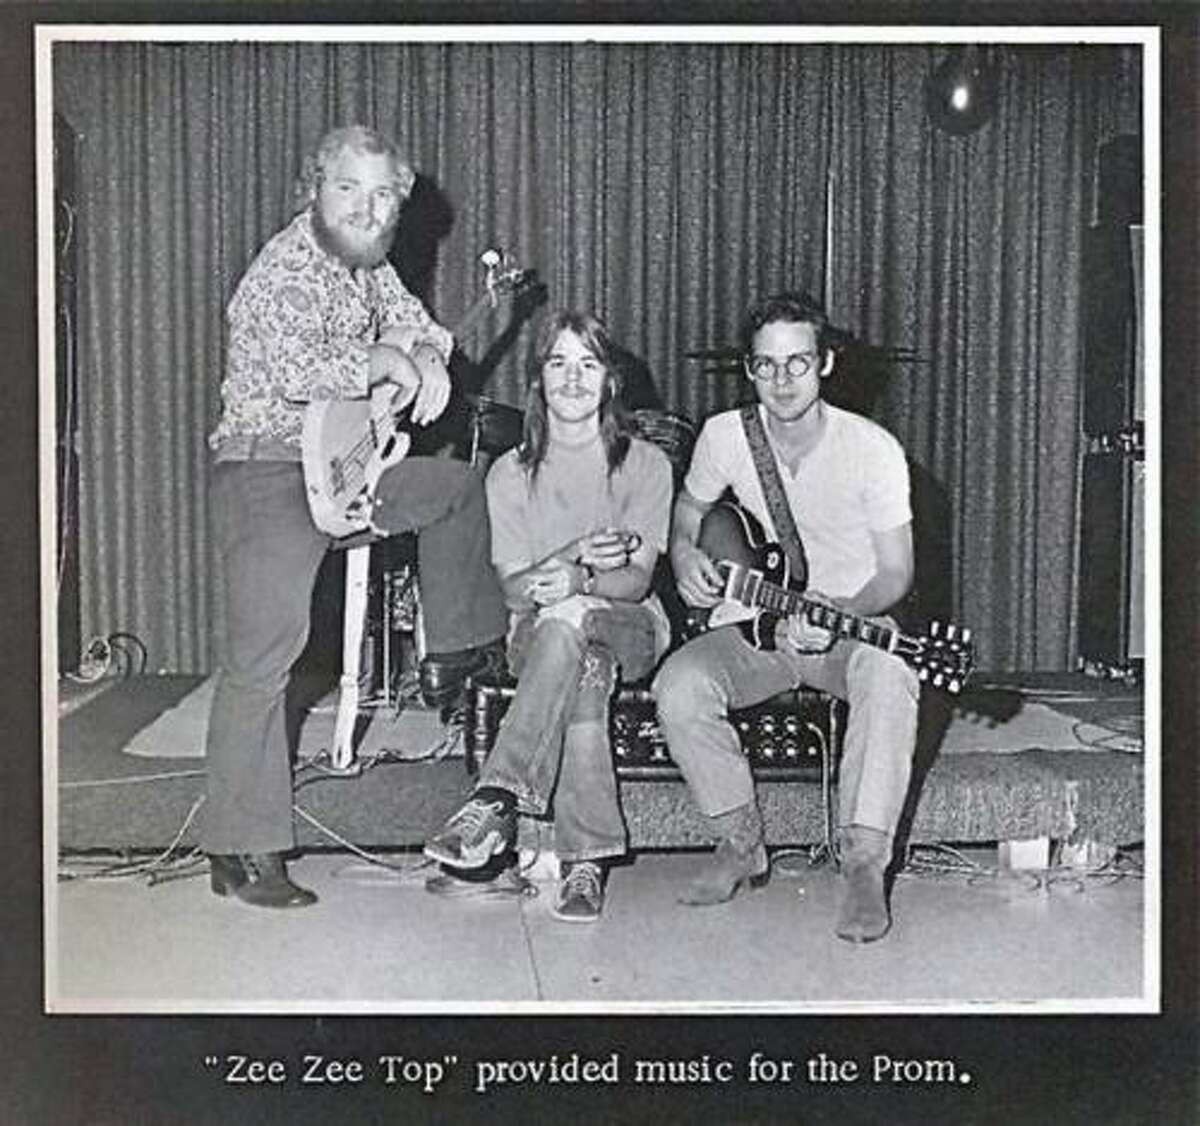 PHOTOS: A visual history of ZZ Top When other members of the Moving Sidewalks were drafted into the Army, Billy Gibbons recruited bassist Dusty Hill (center) and drummer Frank Beard (right) from Dallas band American Blues to form a new band. At this stage, they were decidedly not sharp-dressed men. See the mighty ZZ Top in their pre-beard days...